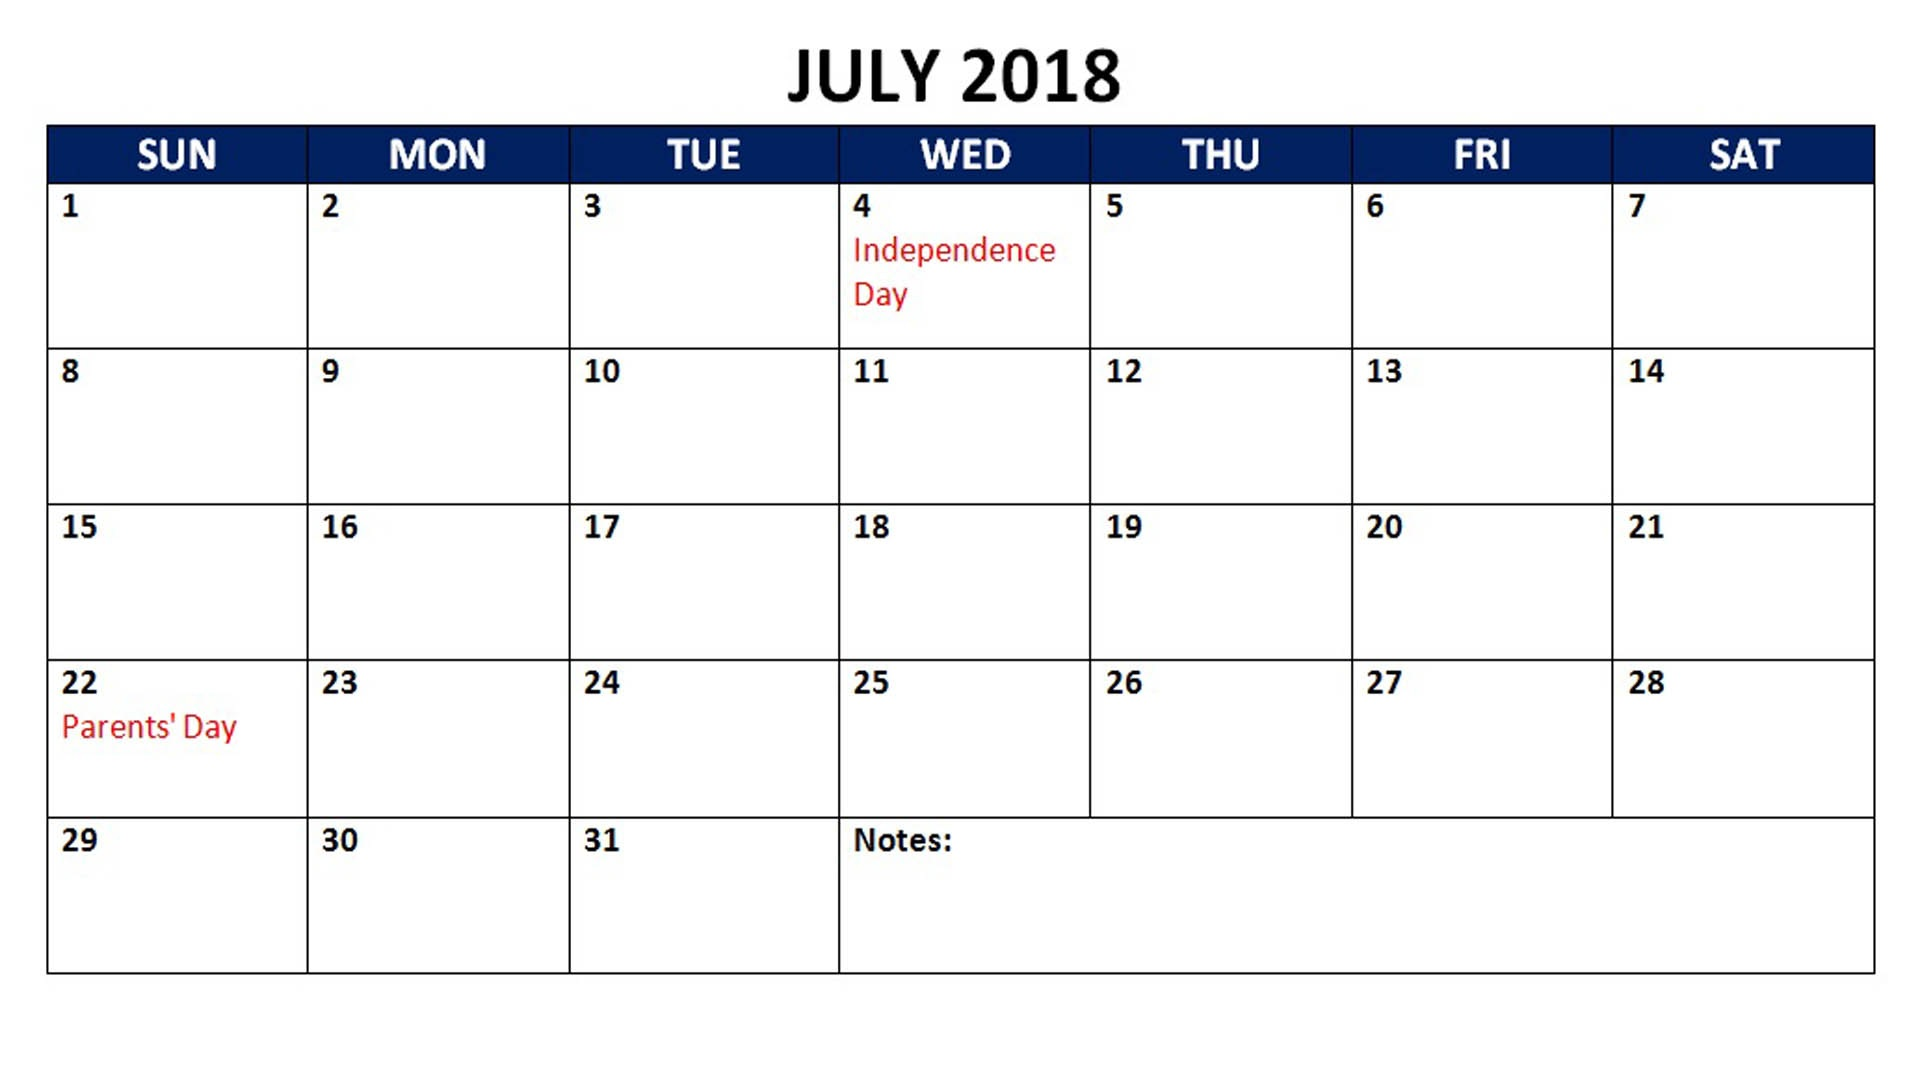 July 2018 Calendar With Holidays